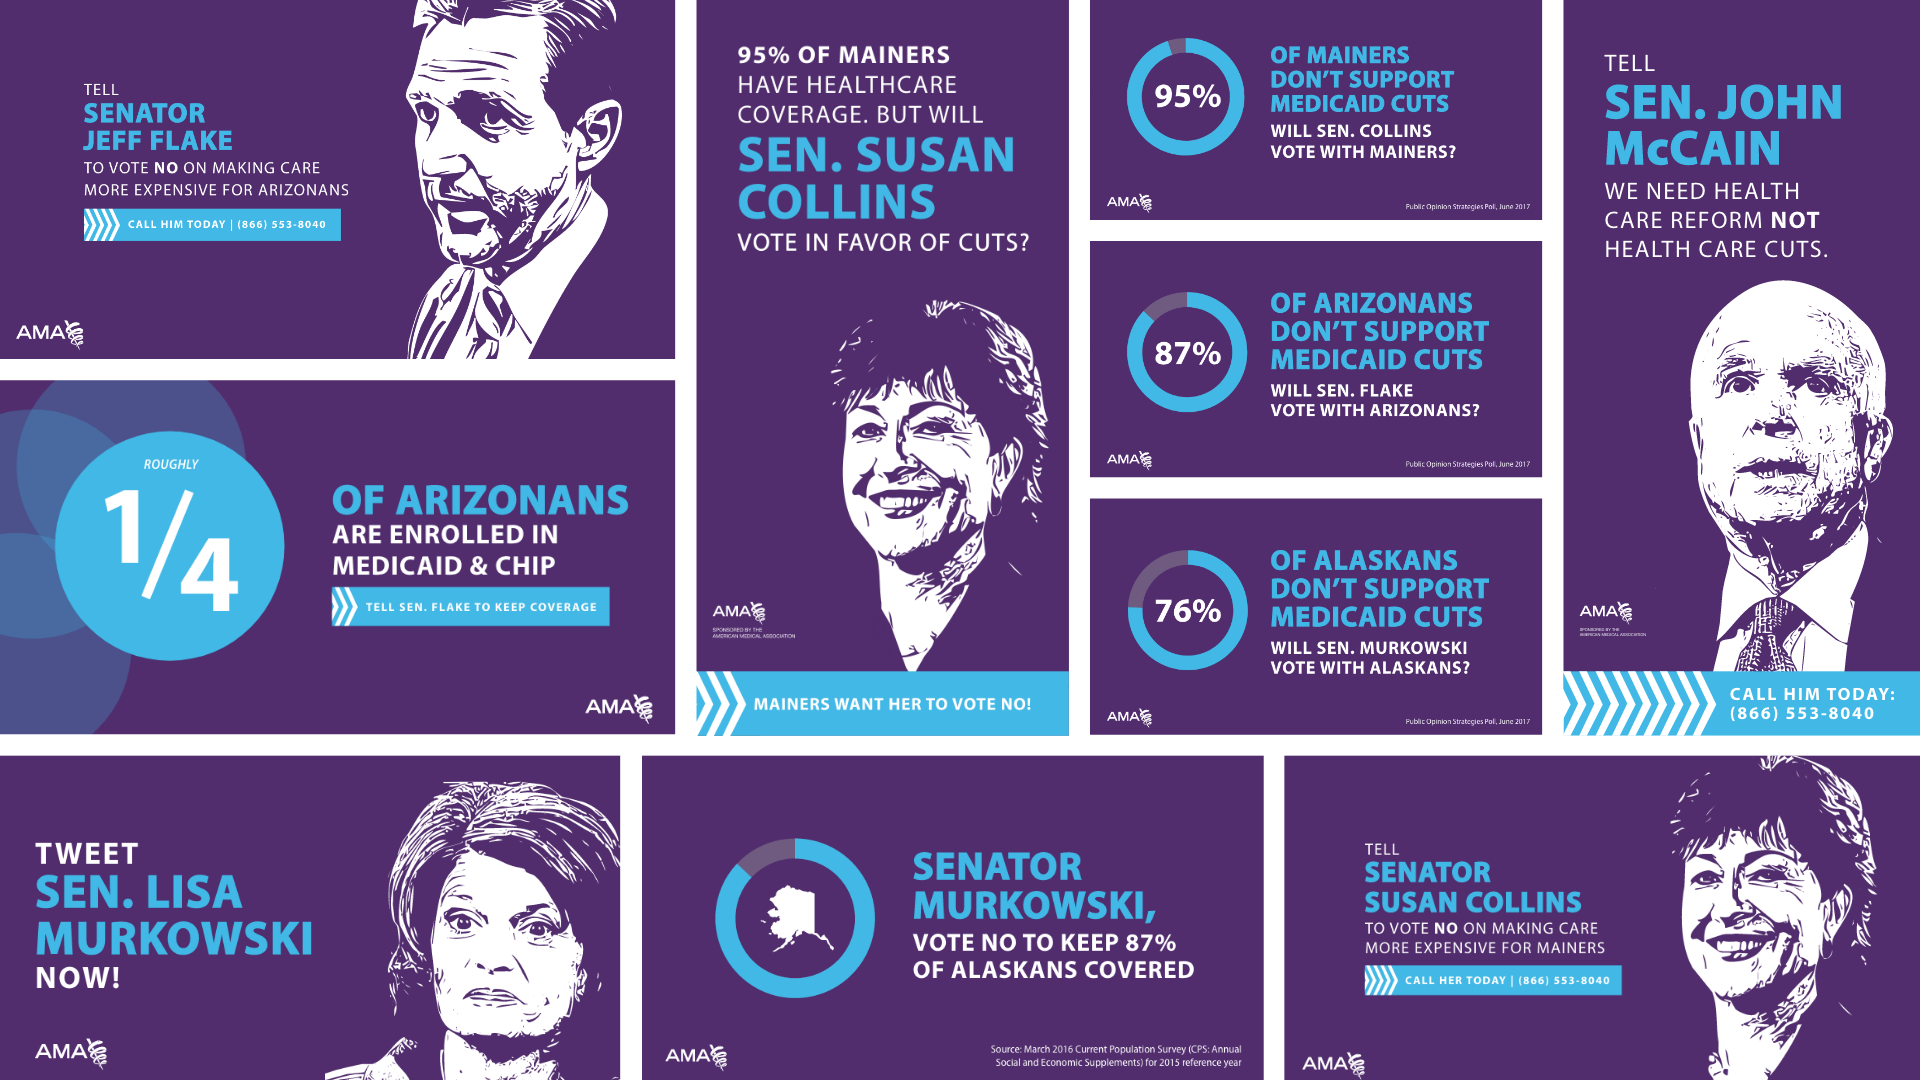 Ads with illustrations of Senator Jeff Flake, Susan Collins, John McCain and Lisa Murkowski from left to right encouraging them to vote no on the repeal of the Affordable Care Act.